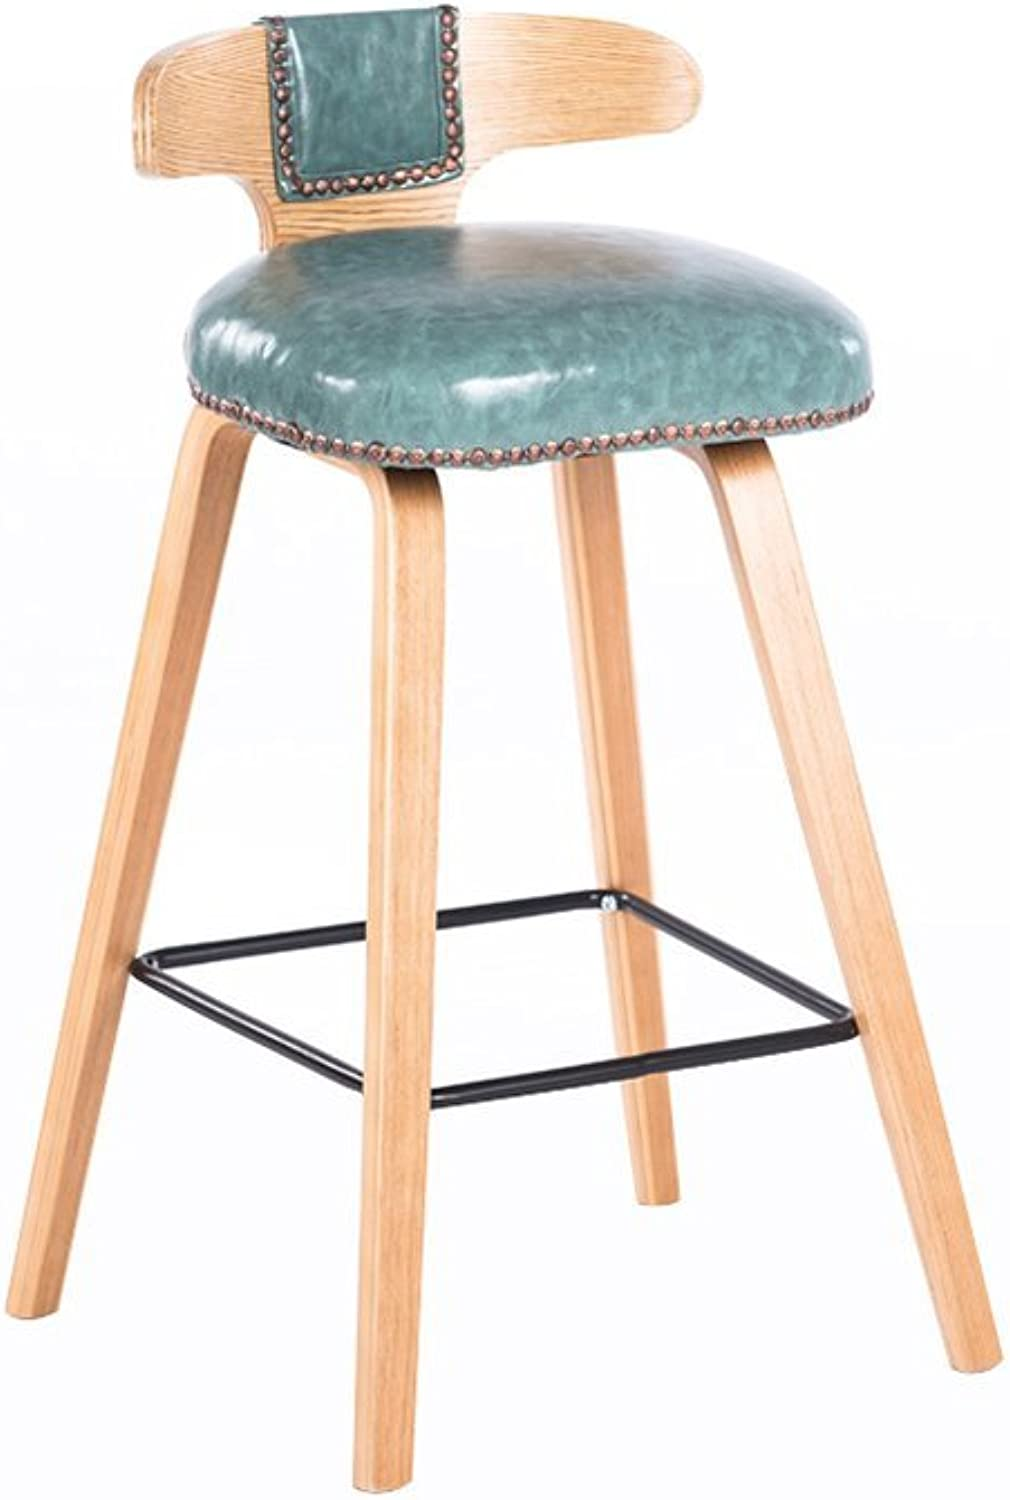 Bar stool - Nordic Style Solid Wood bar Chair Rivet Fashion Cafe Chair Three colors (color   B)